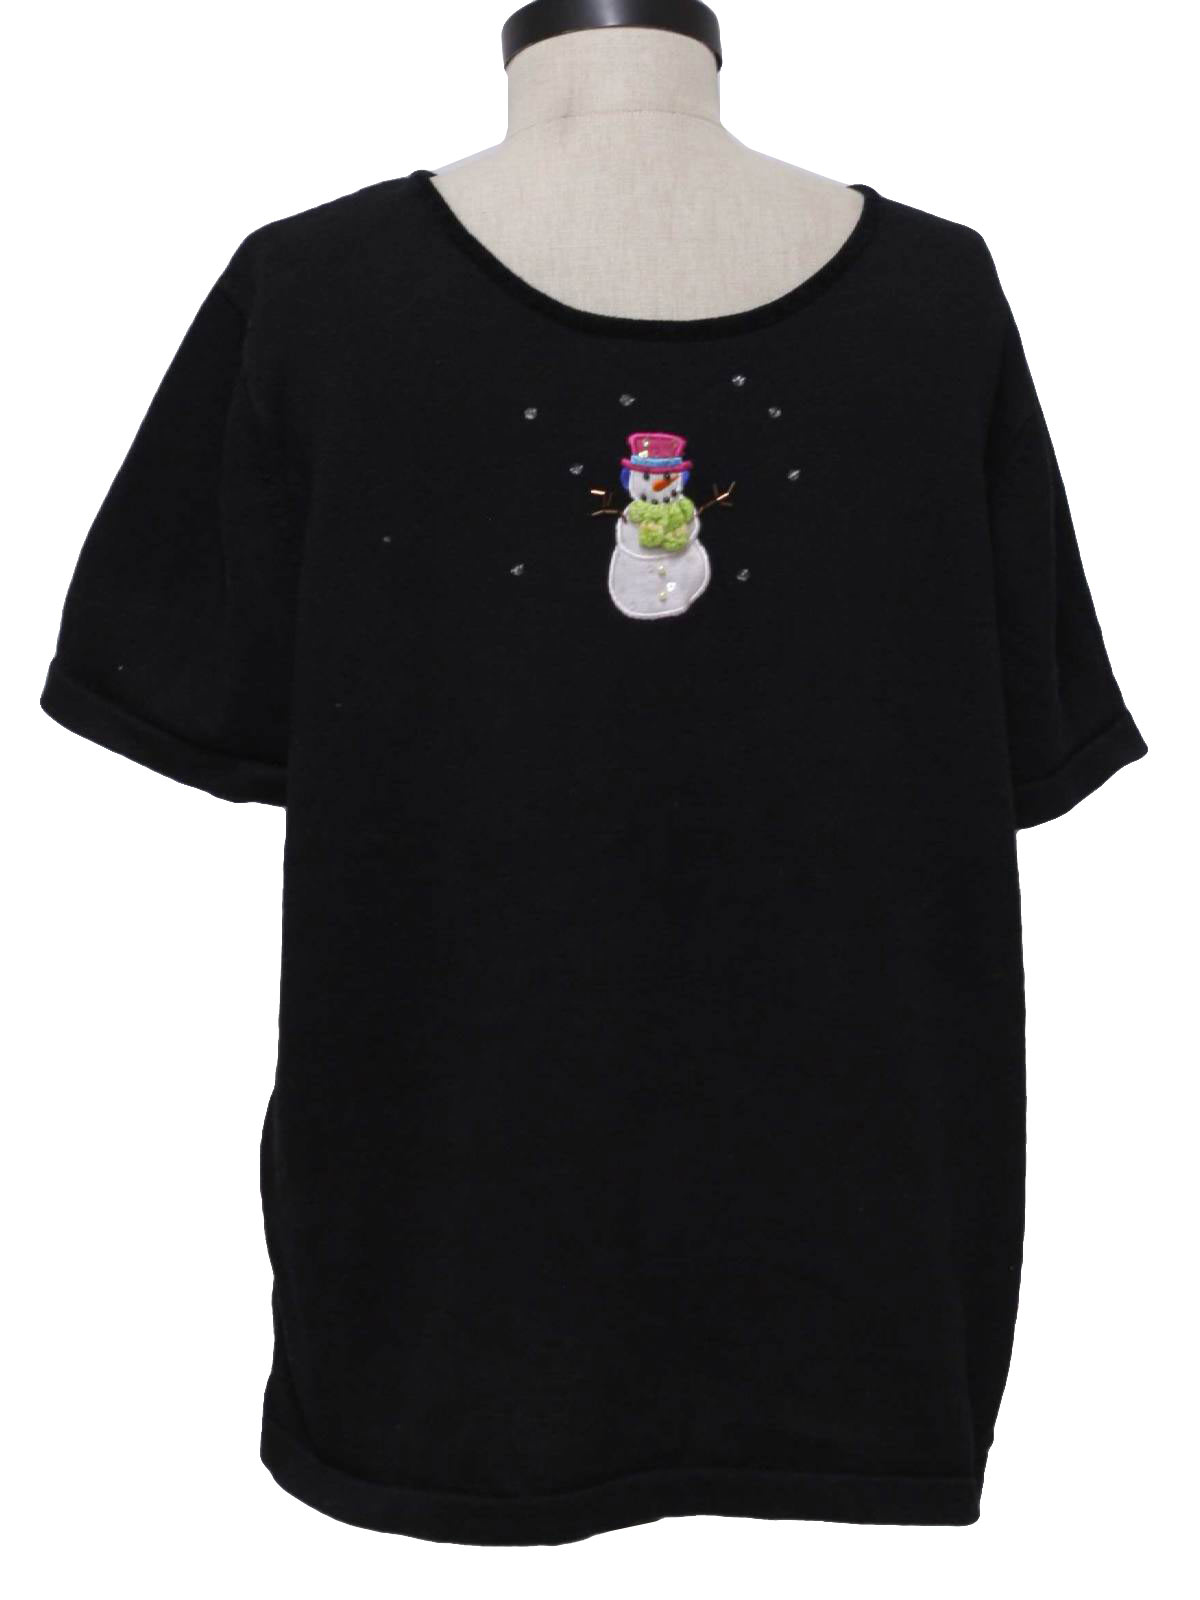 the quacker factory unisex ugly christmas sweater shirt 25 00 sale